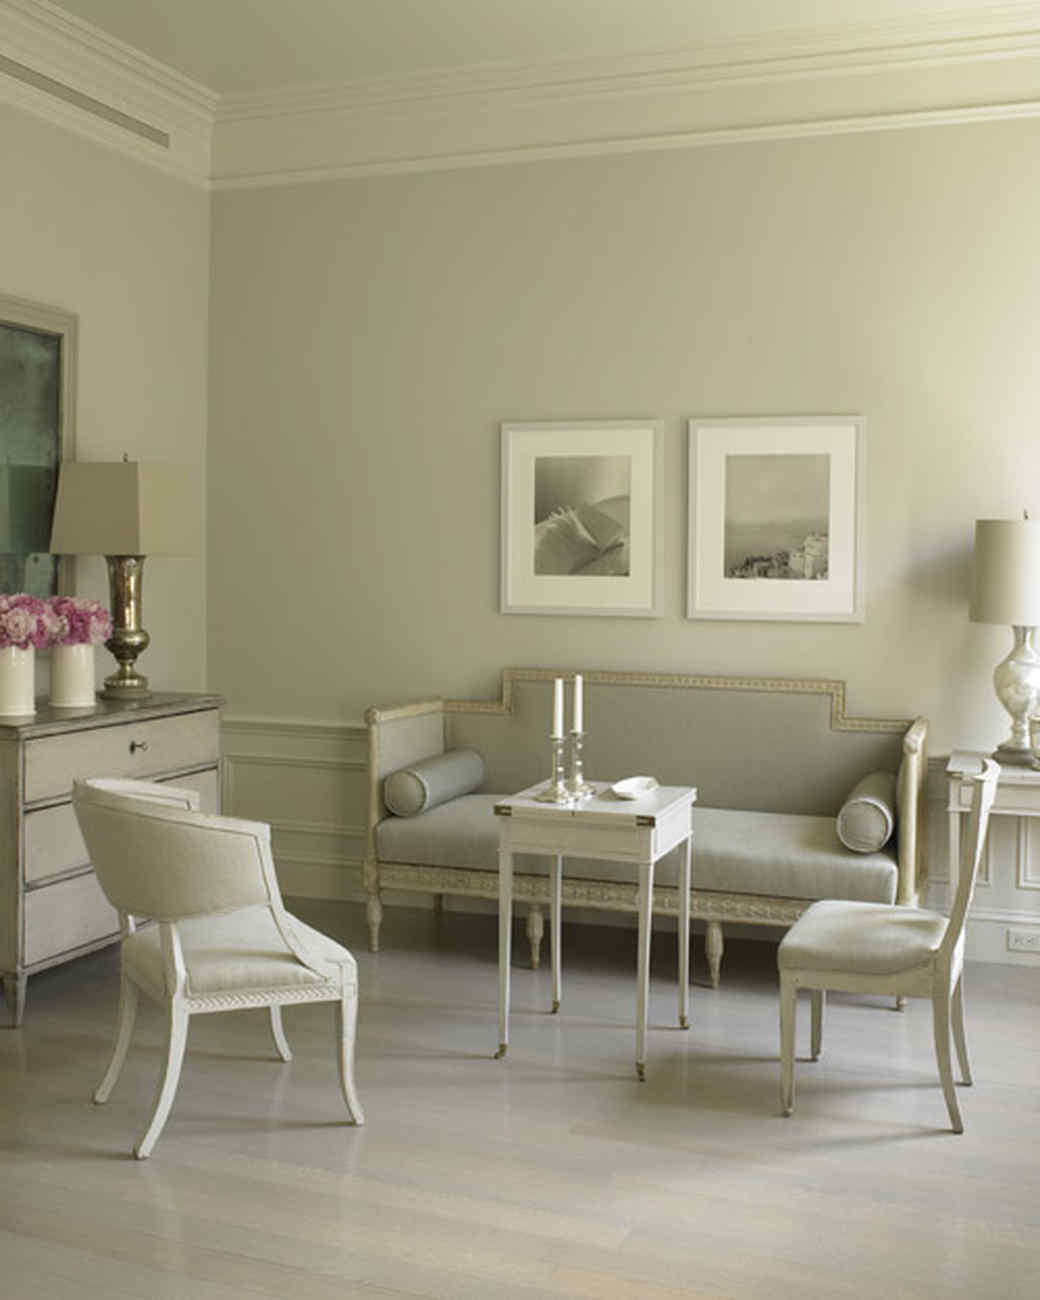 Home Tour: A Gray and Graceful Apartment | Martha Stewart